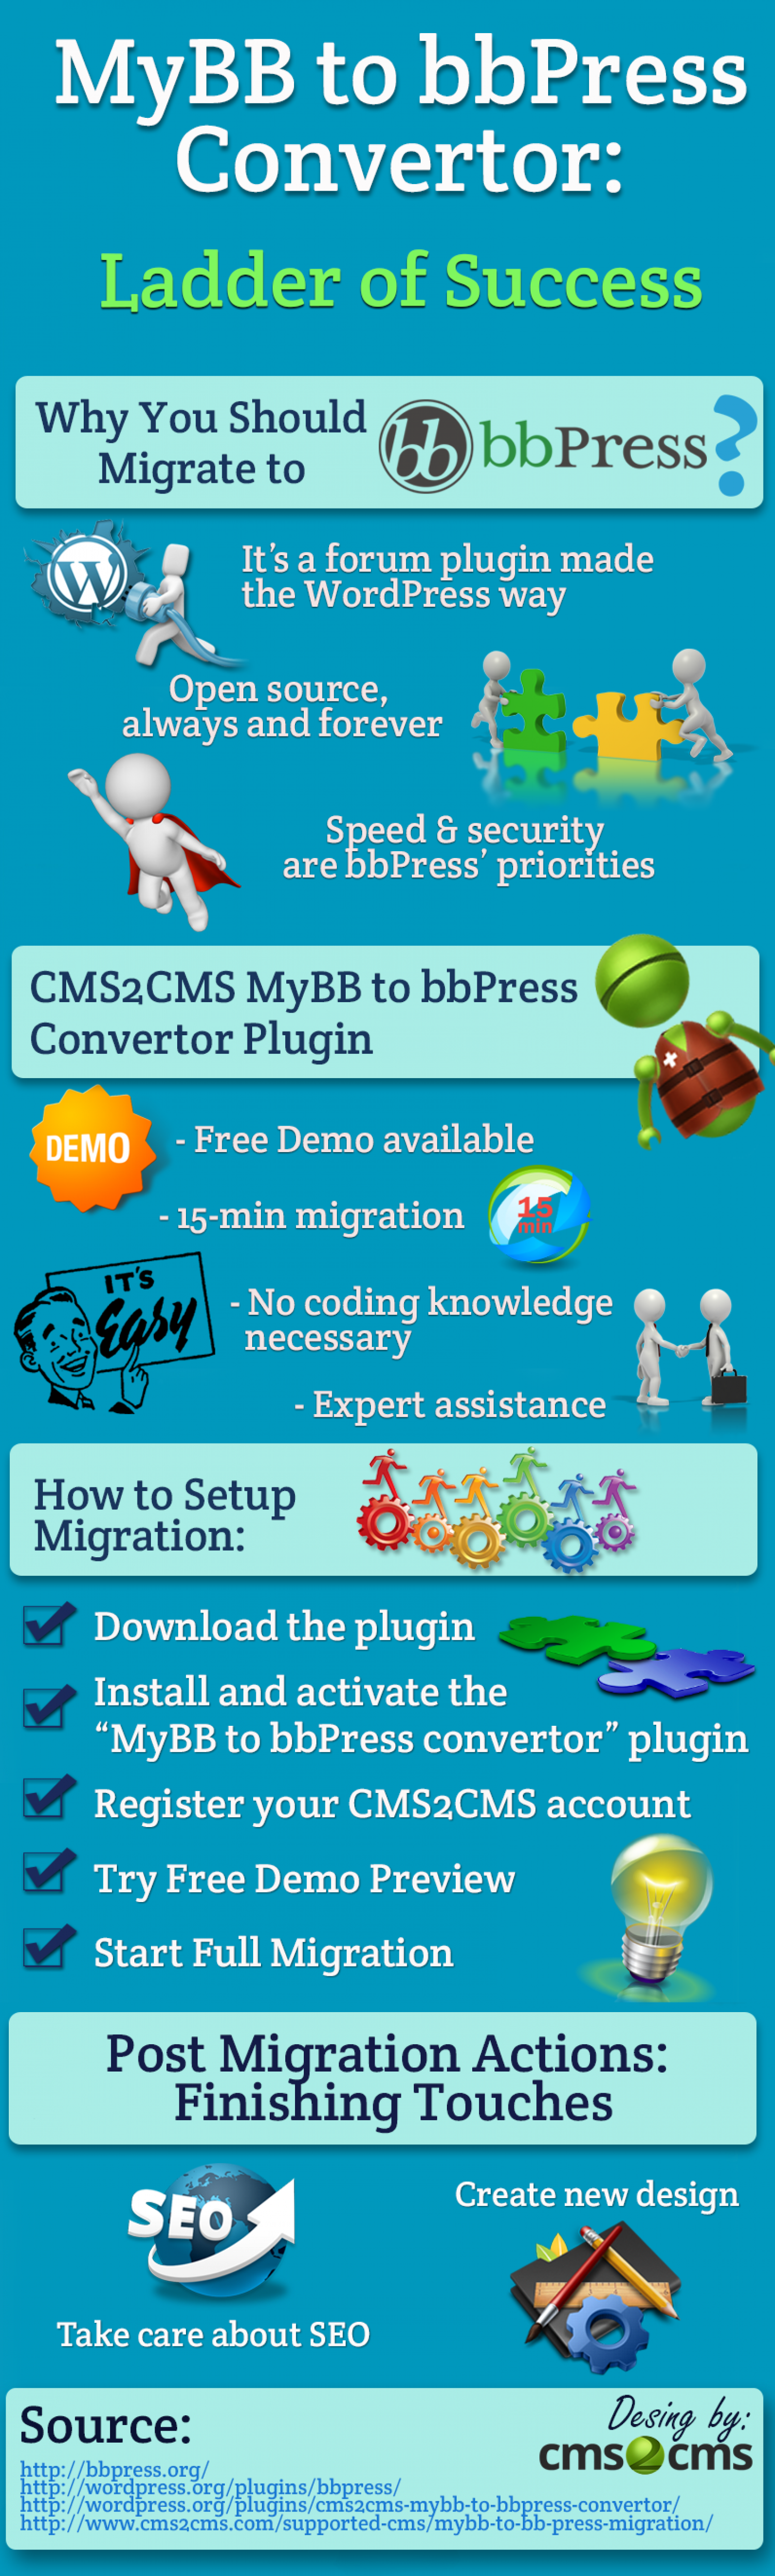 MyBB to bbPress Convertor: Ladder of Success Infographic